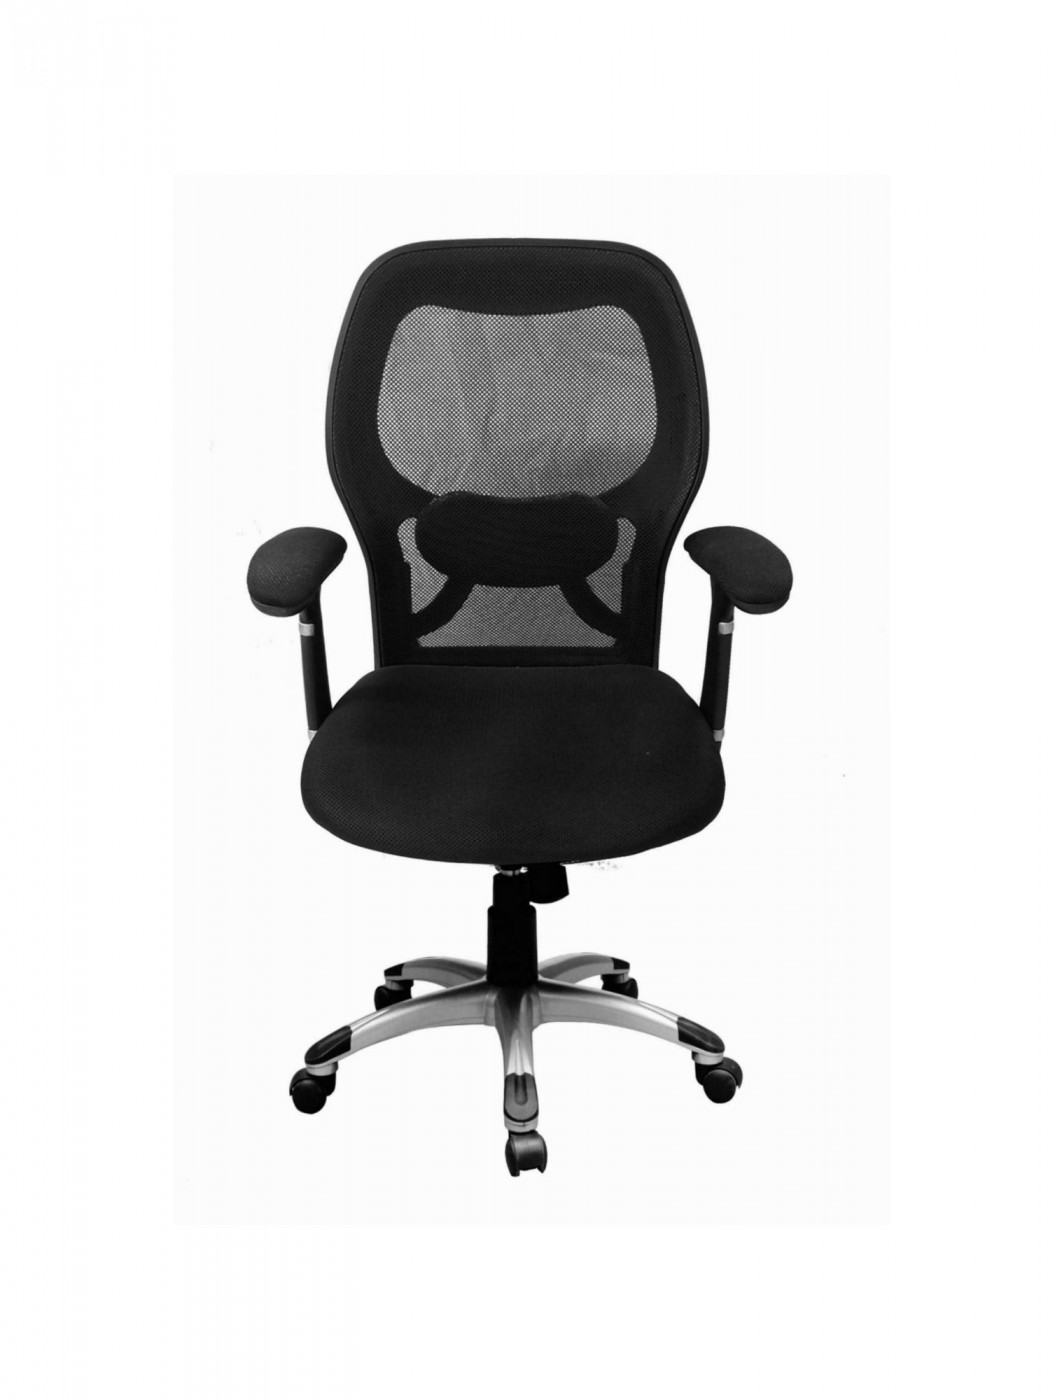 ergonomic chair auckland back covers classroom office chairs bcm a528 121 furniture